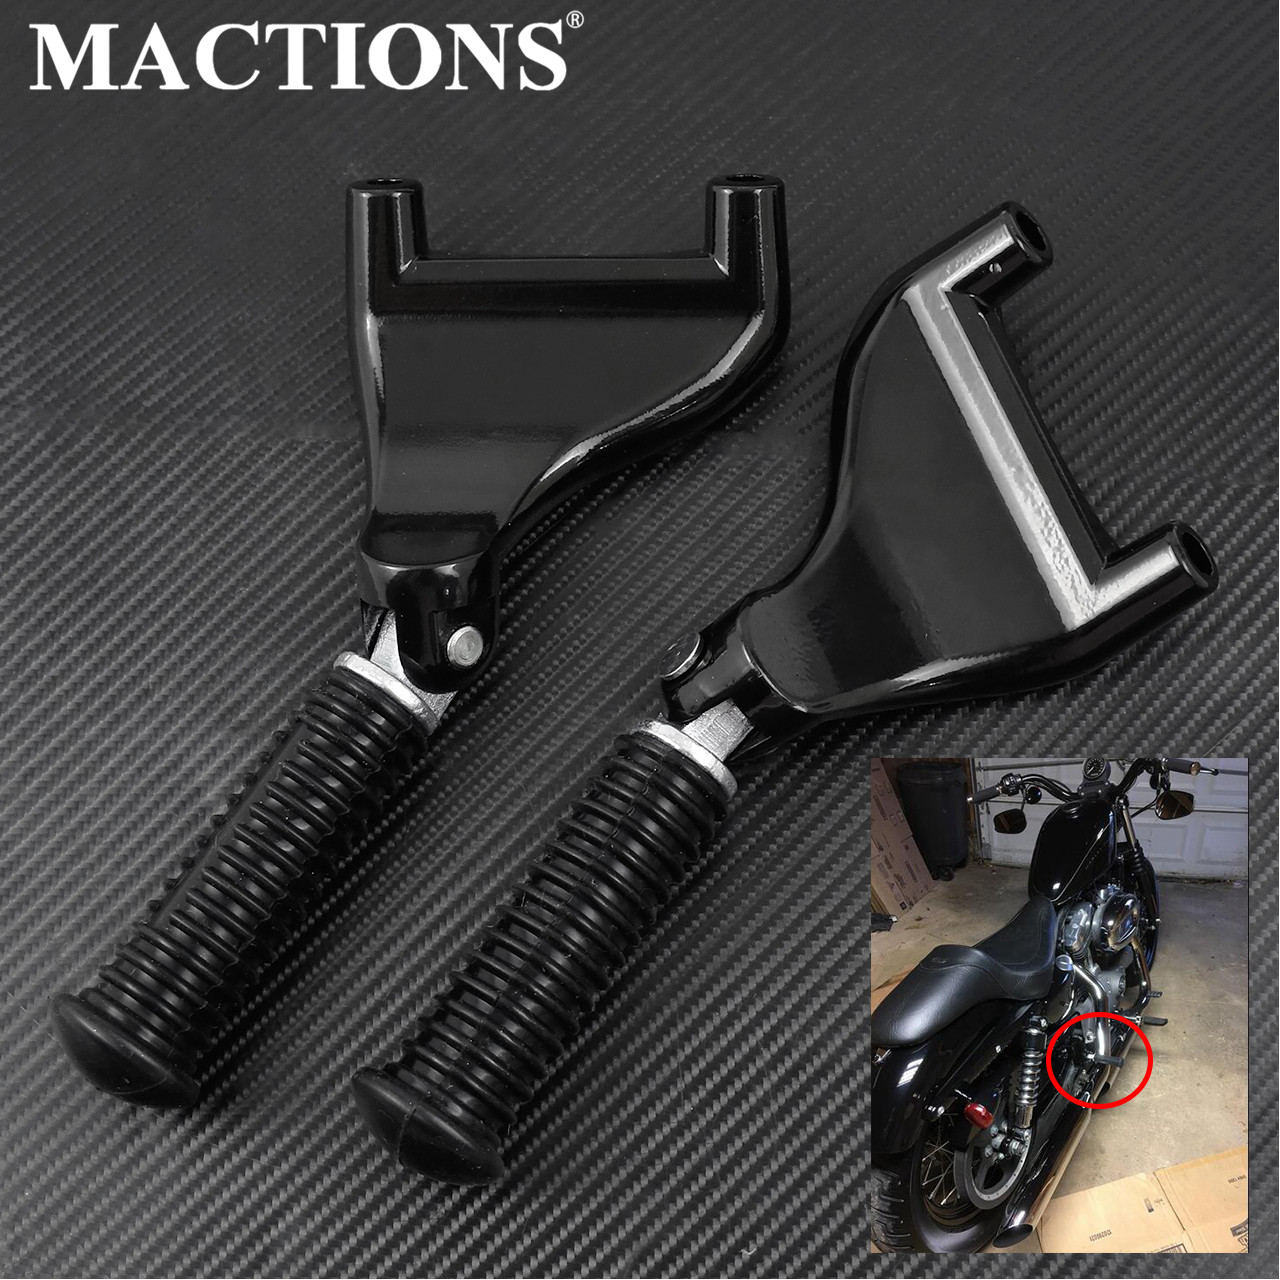 Motorcycle Black Rear Passenger Footpeg Foot Pedal Mount Kit For Harley Sportster XL1200X 883 Iron 48 72 XR 2004-2013